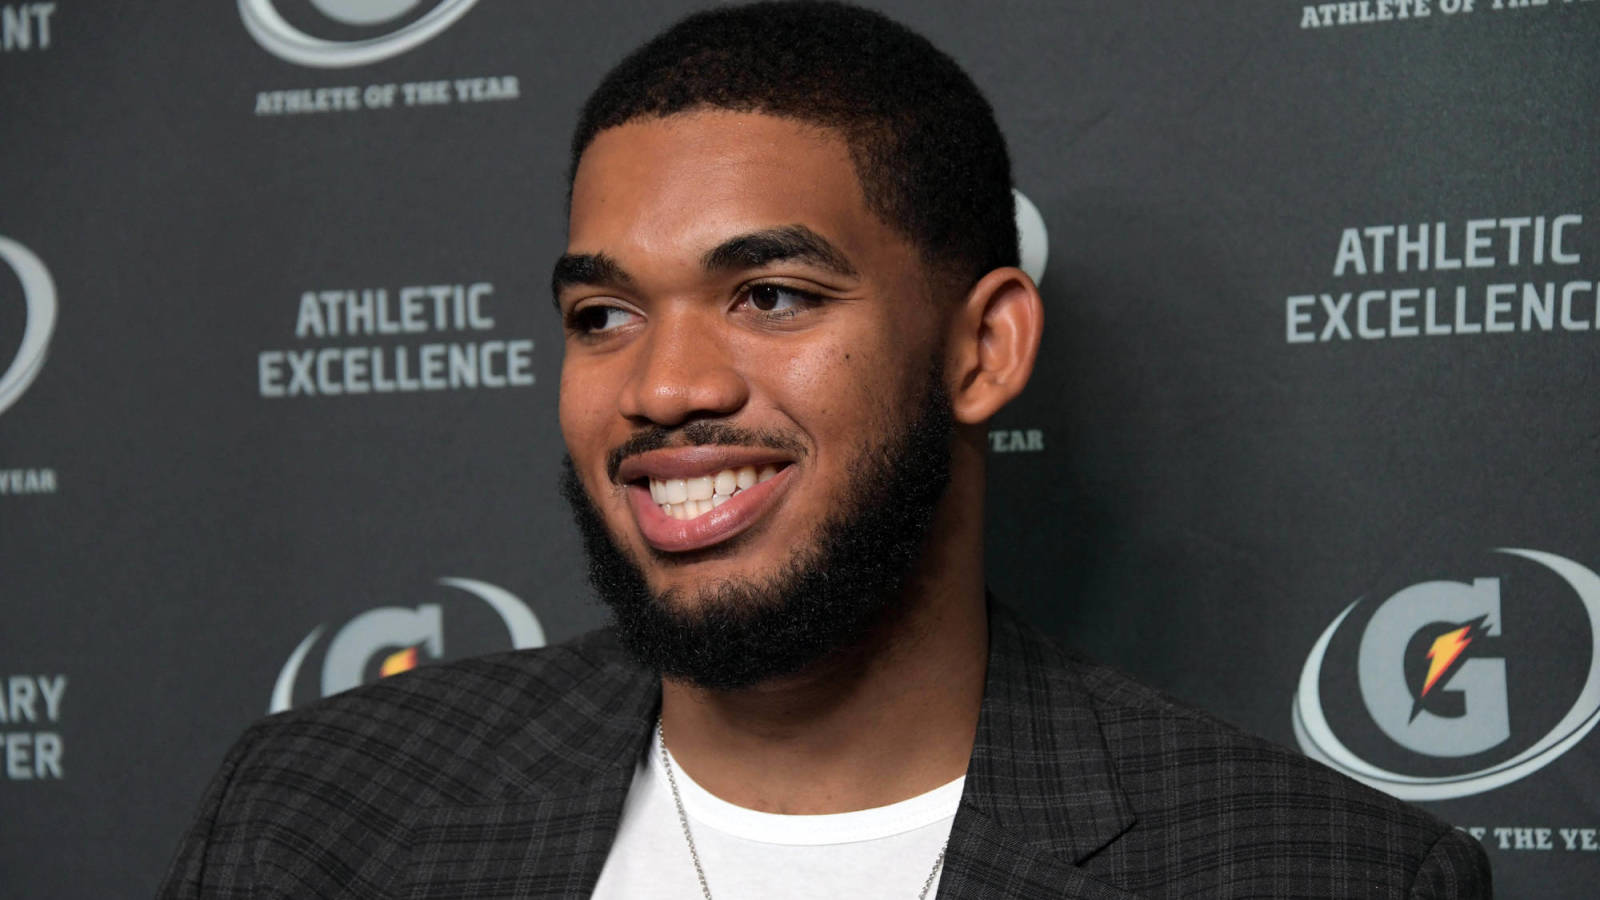 Karl-Anthony Towns jokes with John Calipari after contract news